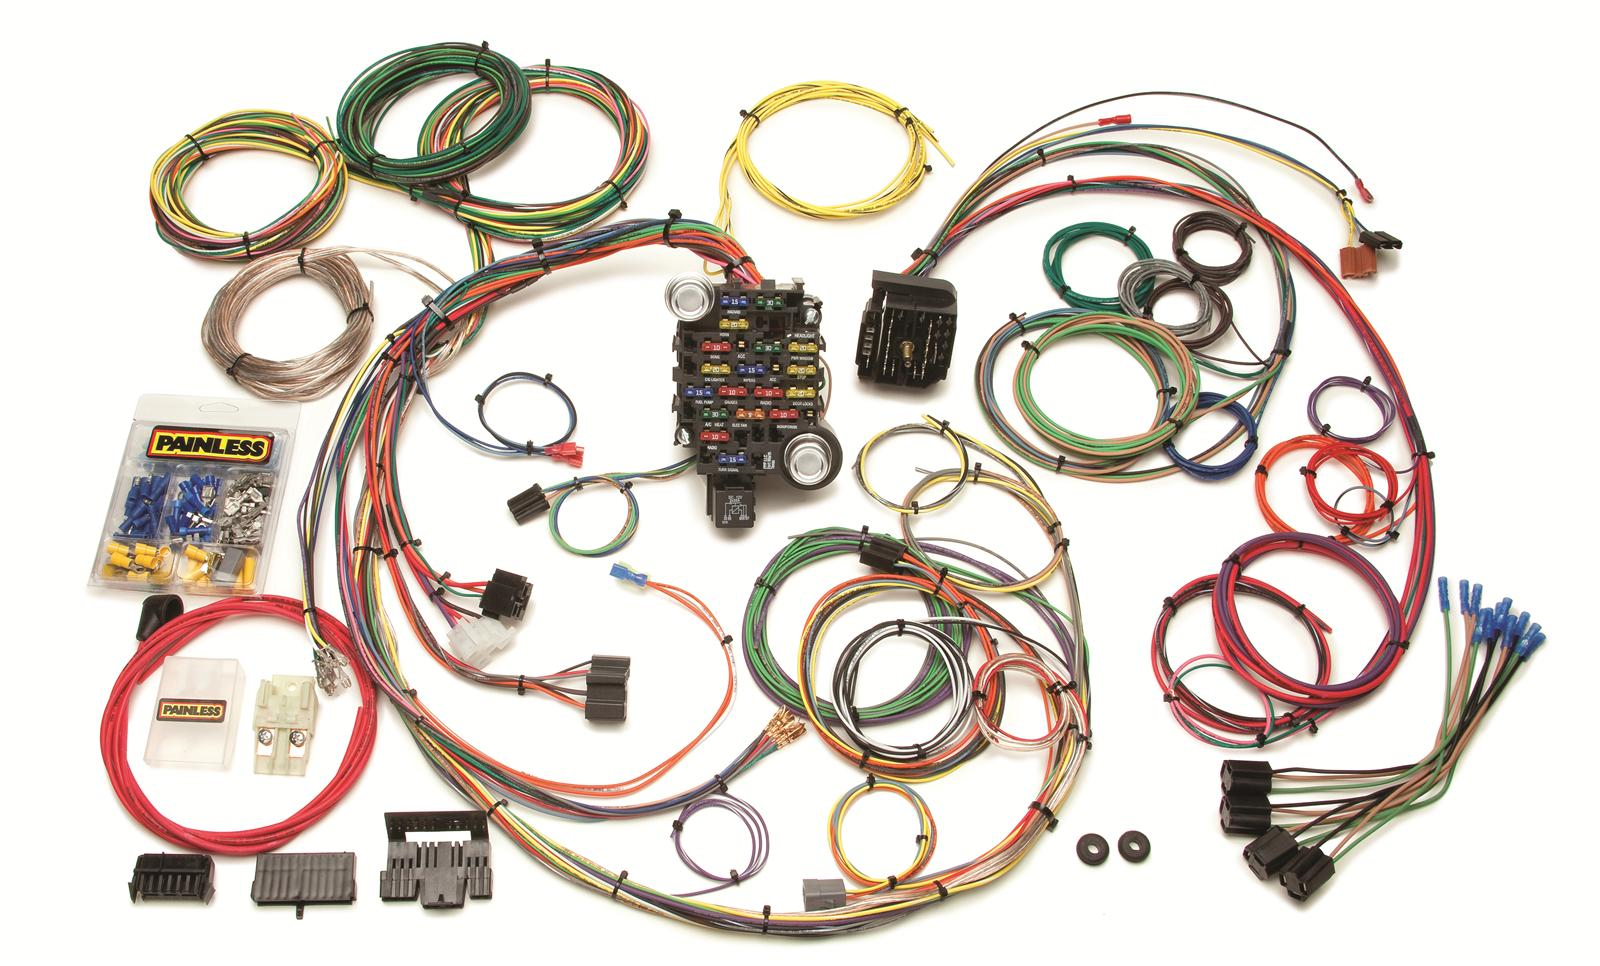 Painless Wiring Harness Chevy Content Resource Of Diagram Truck Engine Performance 25 Circuit 1969 74 Gm Muscle Car Harnesses Rh Summitracing Com